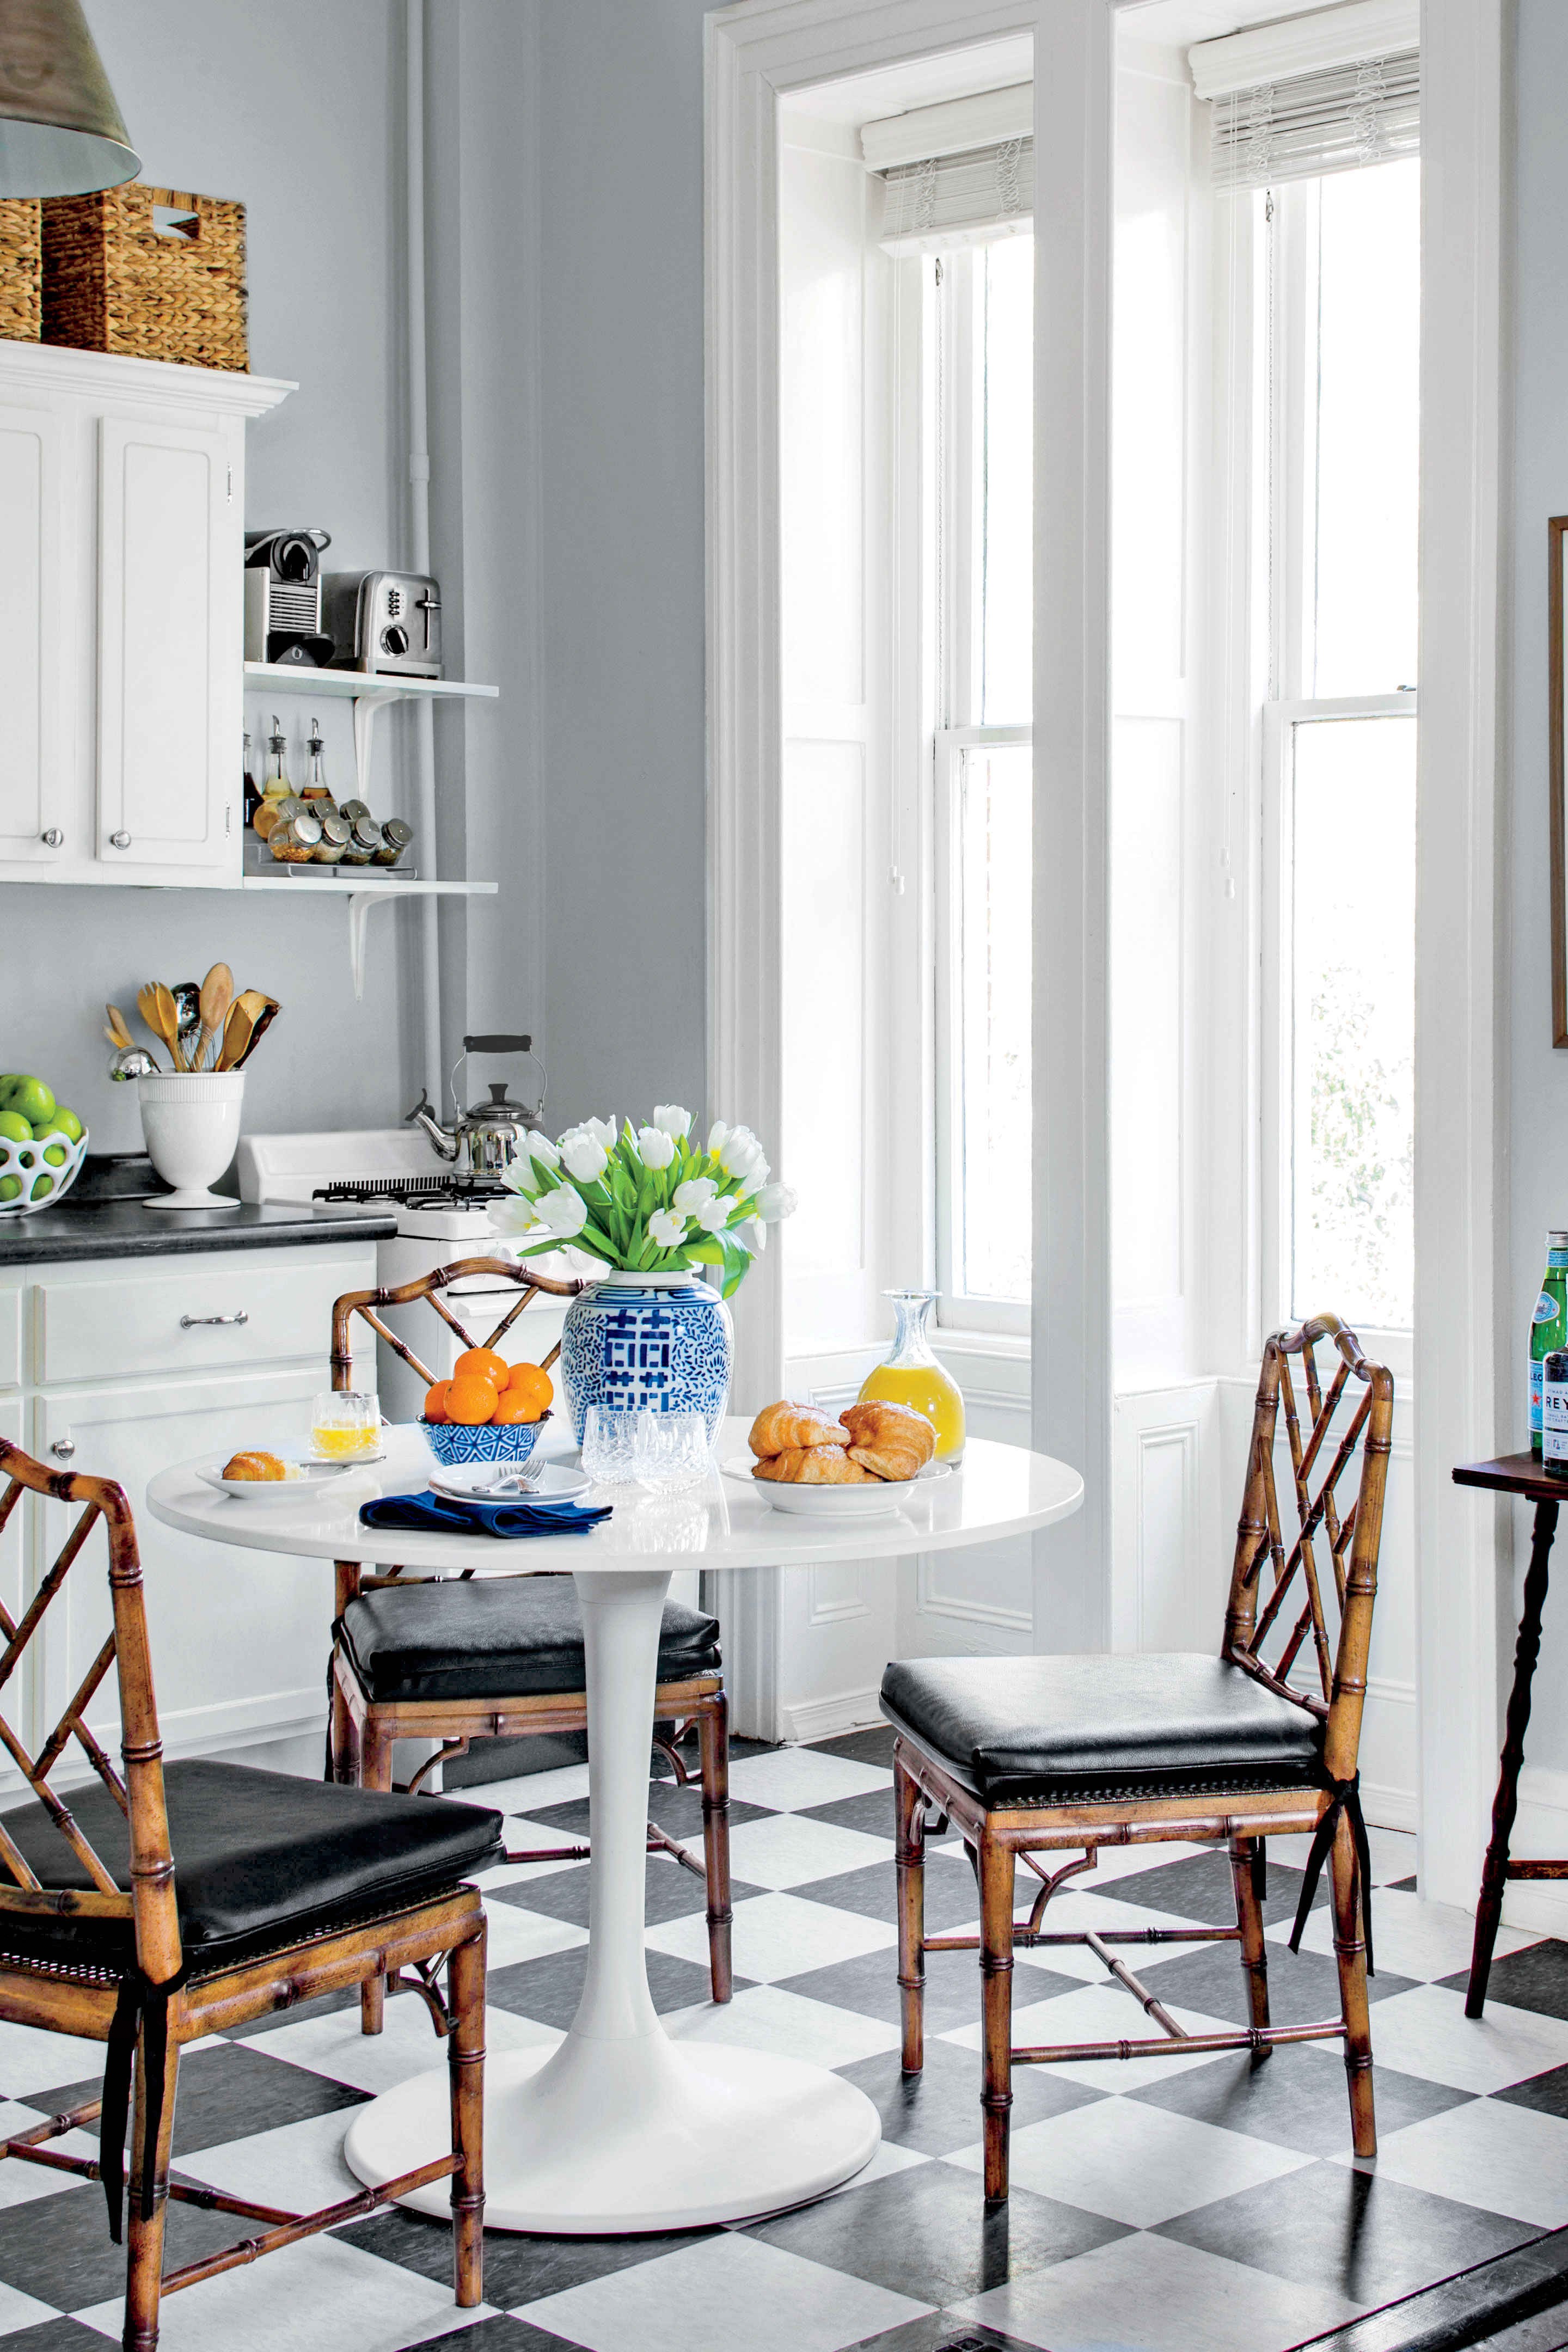 5 Quick Tips to Updating A Rental Kitchen